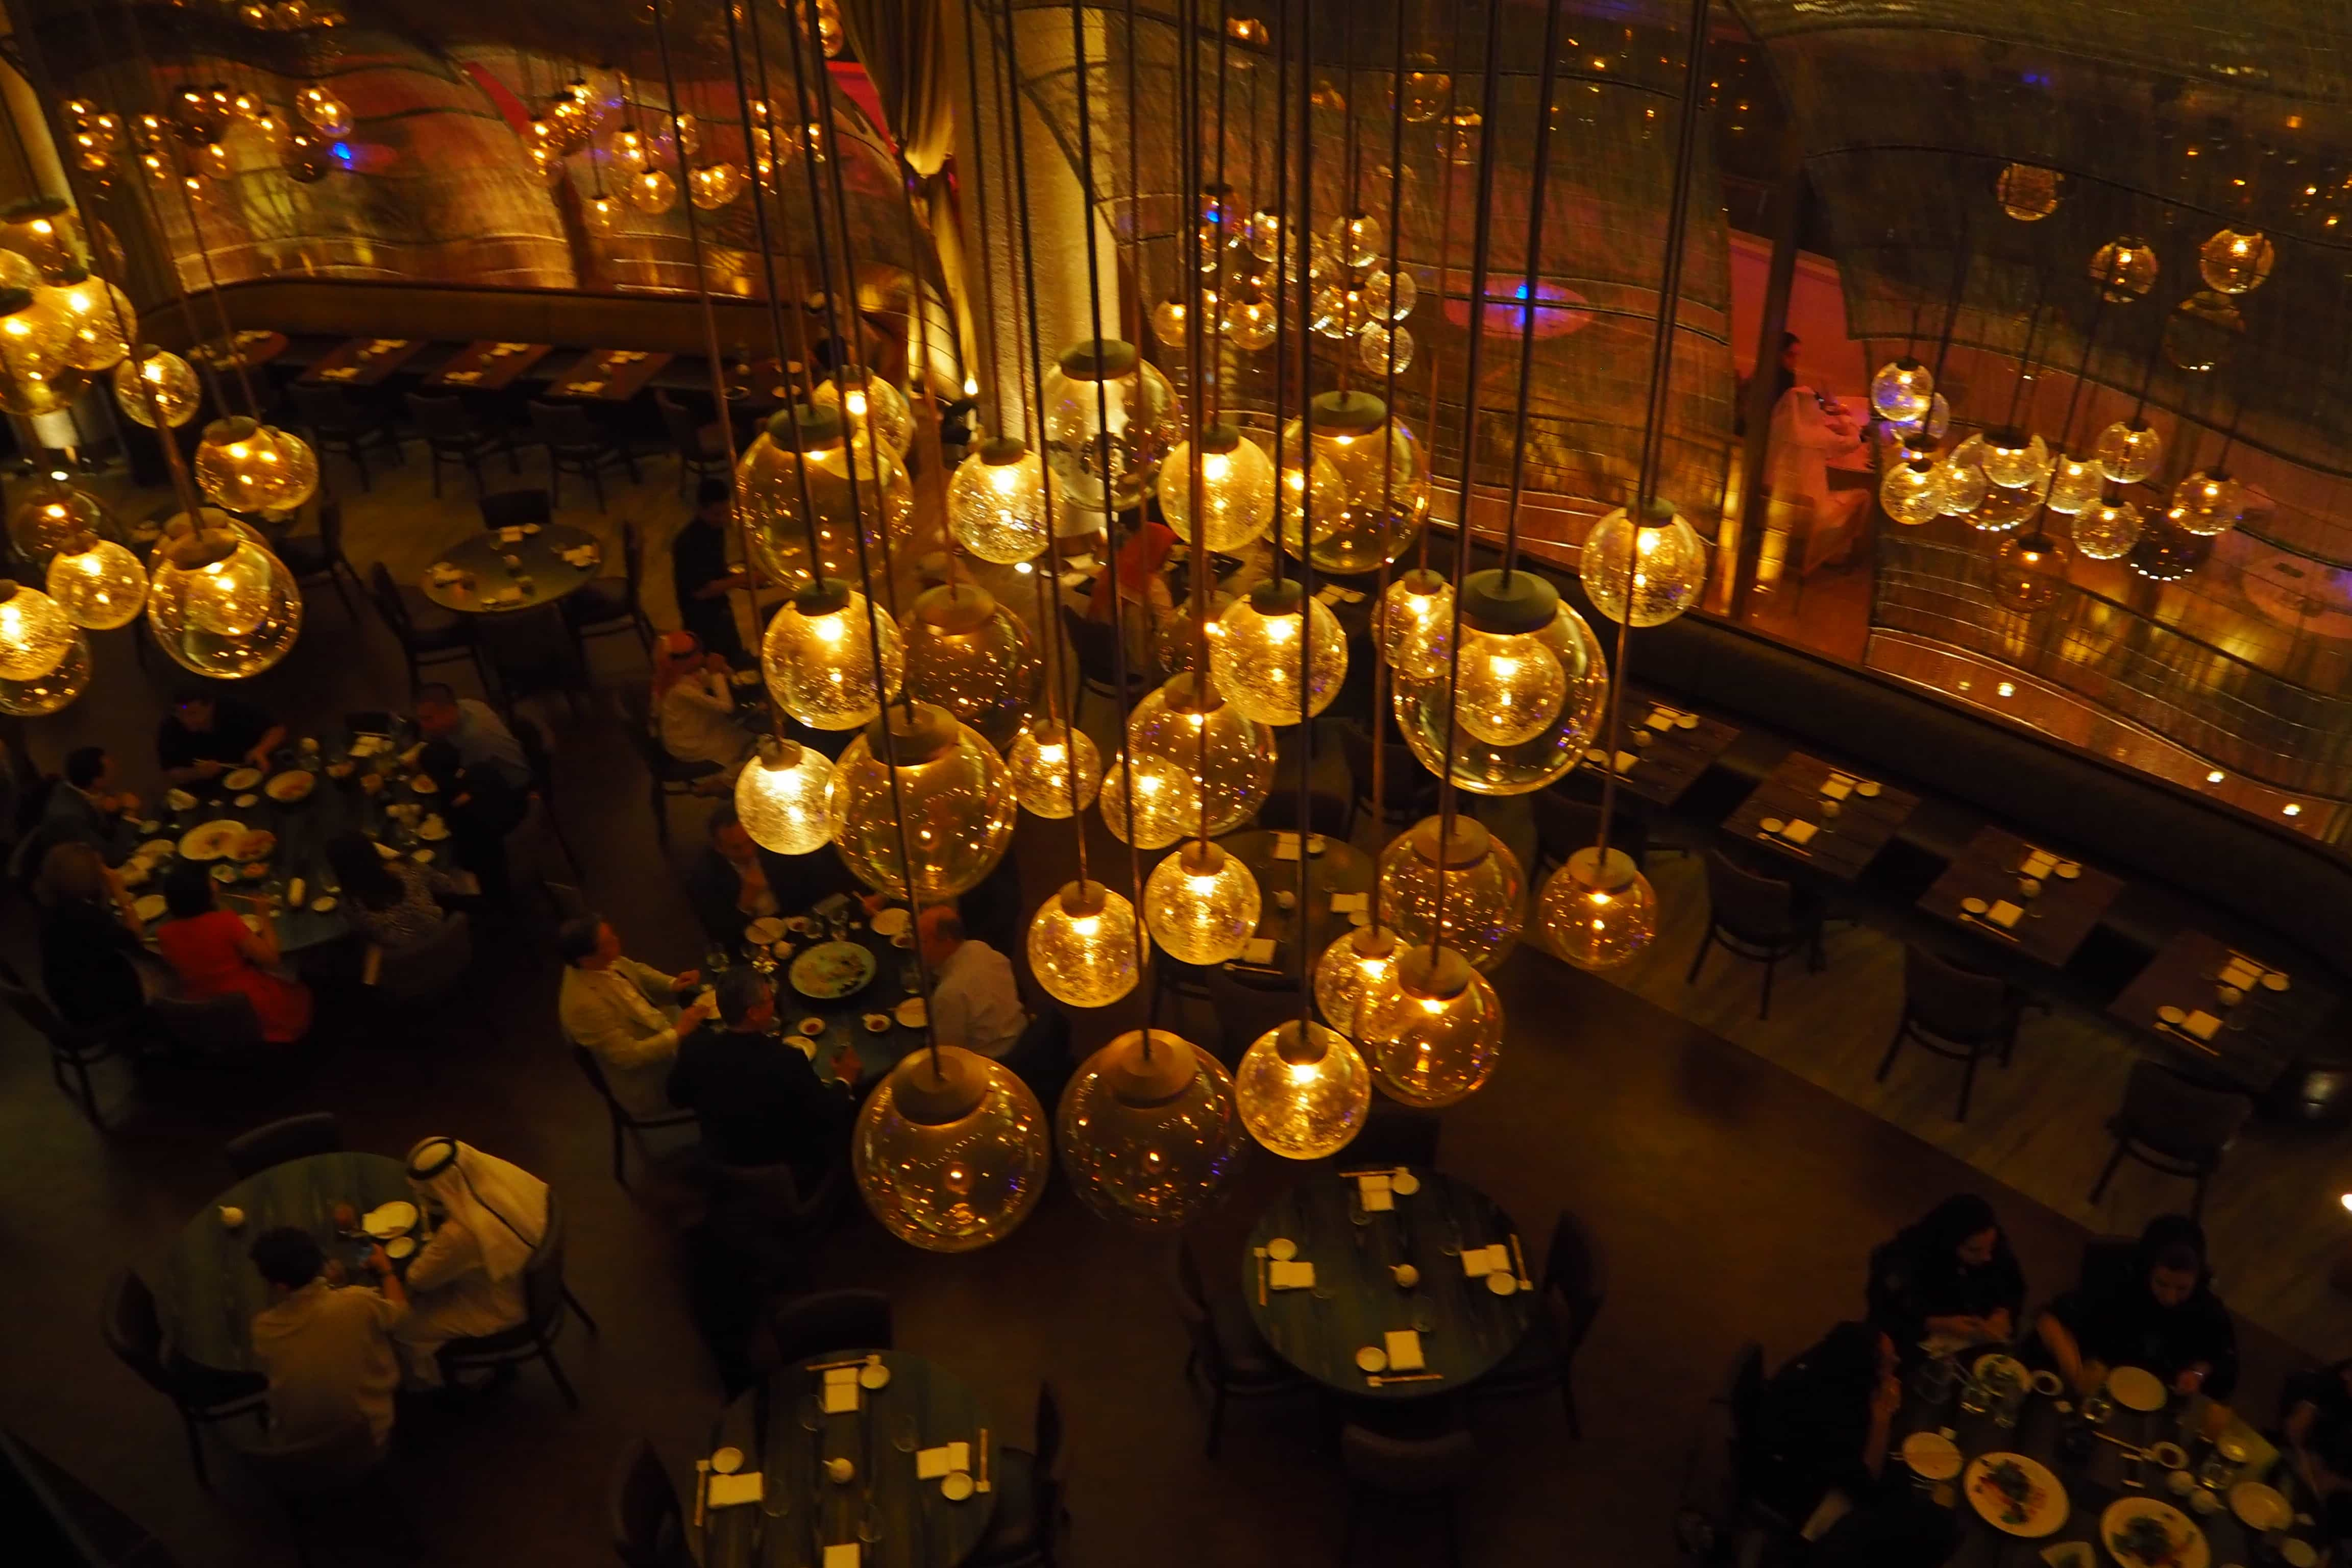 Qatar opening of the worlds largest nobu restaurant the style interiors at nobu restaurant doha qatar arubaitofo Image collections